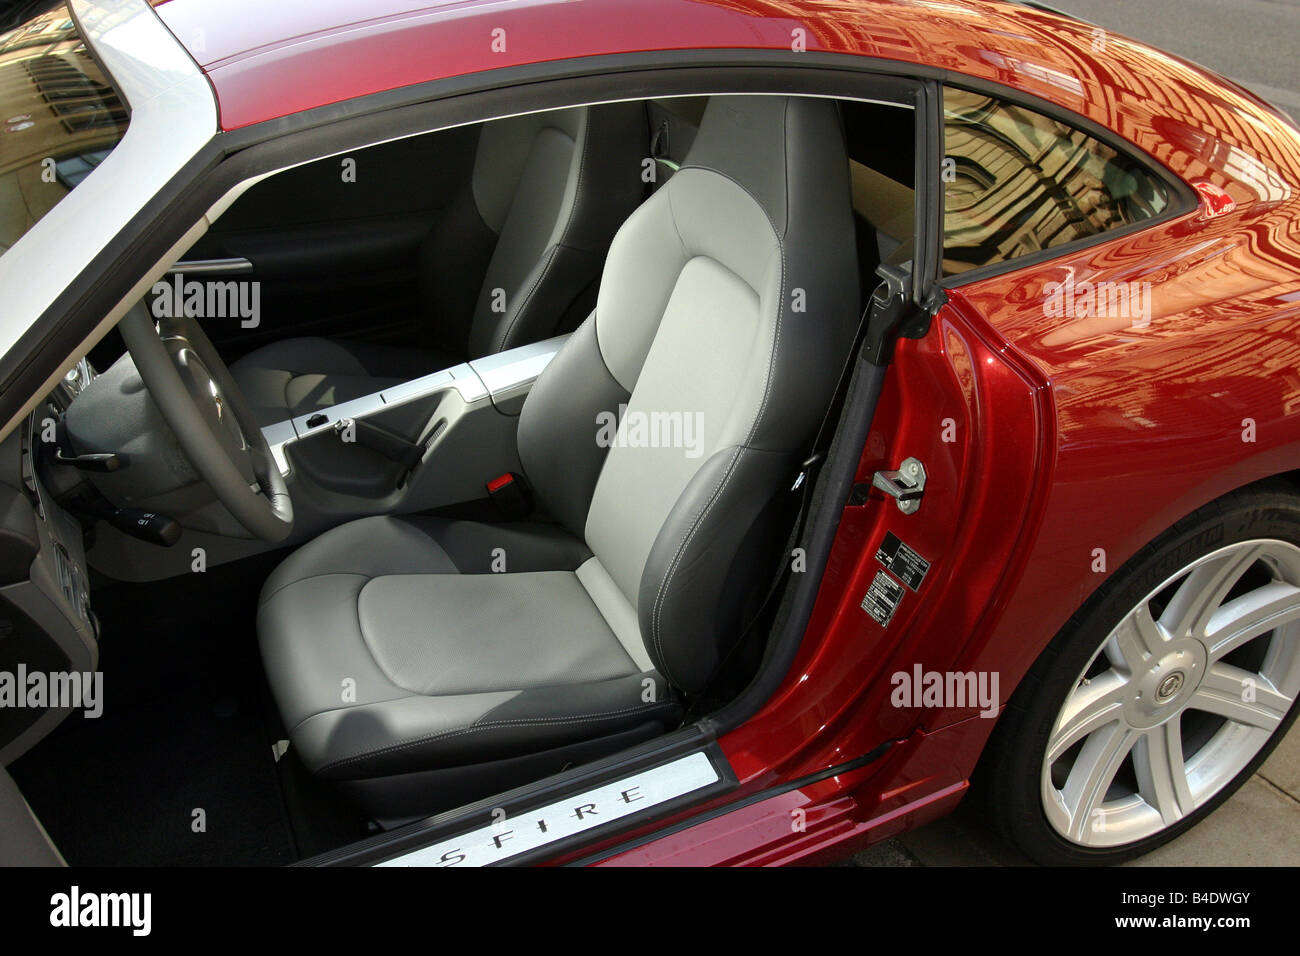 Seat Coupe Stock Photos & Seat Coupe Stock Images - Alamy